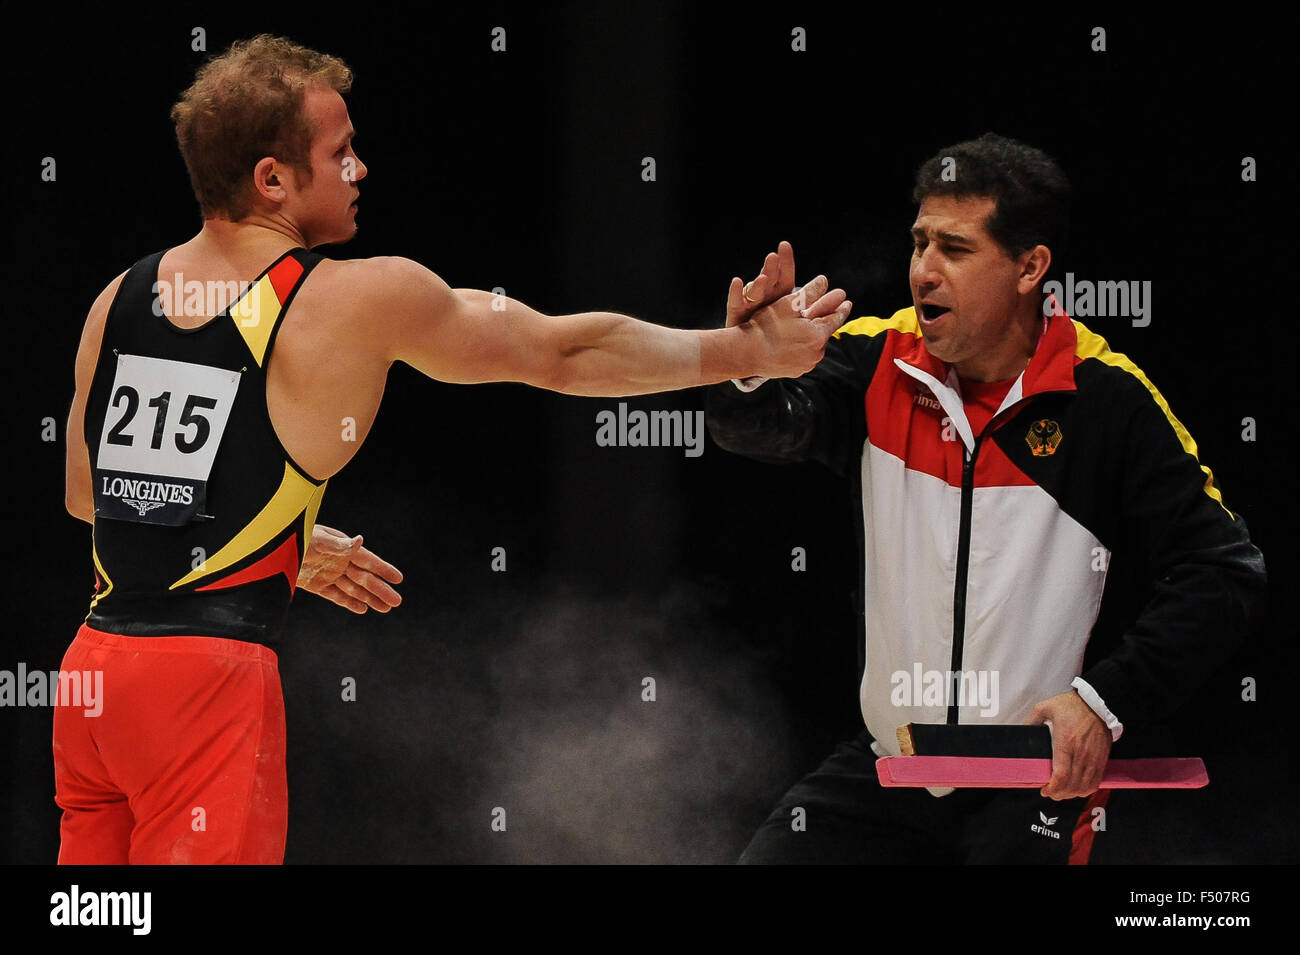 FABIAN HAMBUECHEN from Germany celebrates with his coach after his parallel bars routine during the preliminary - Stock Image